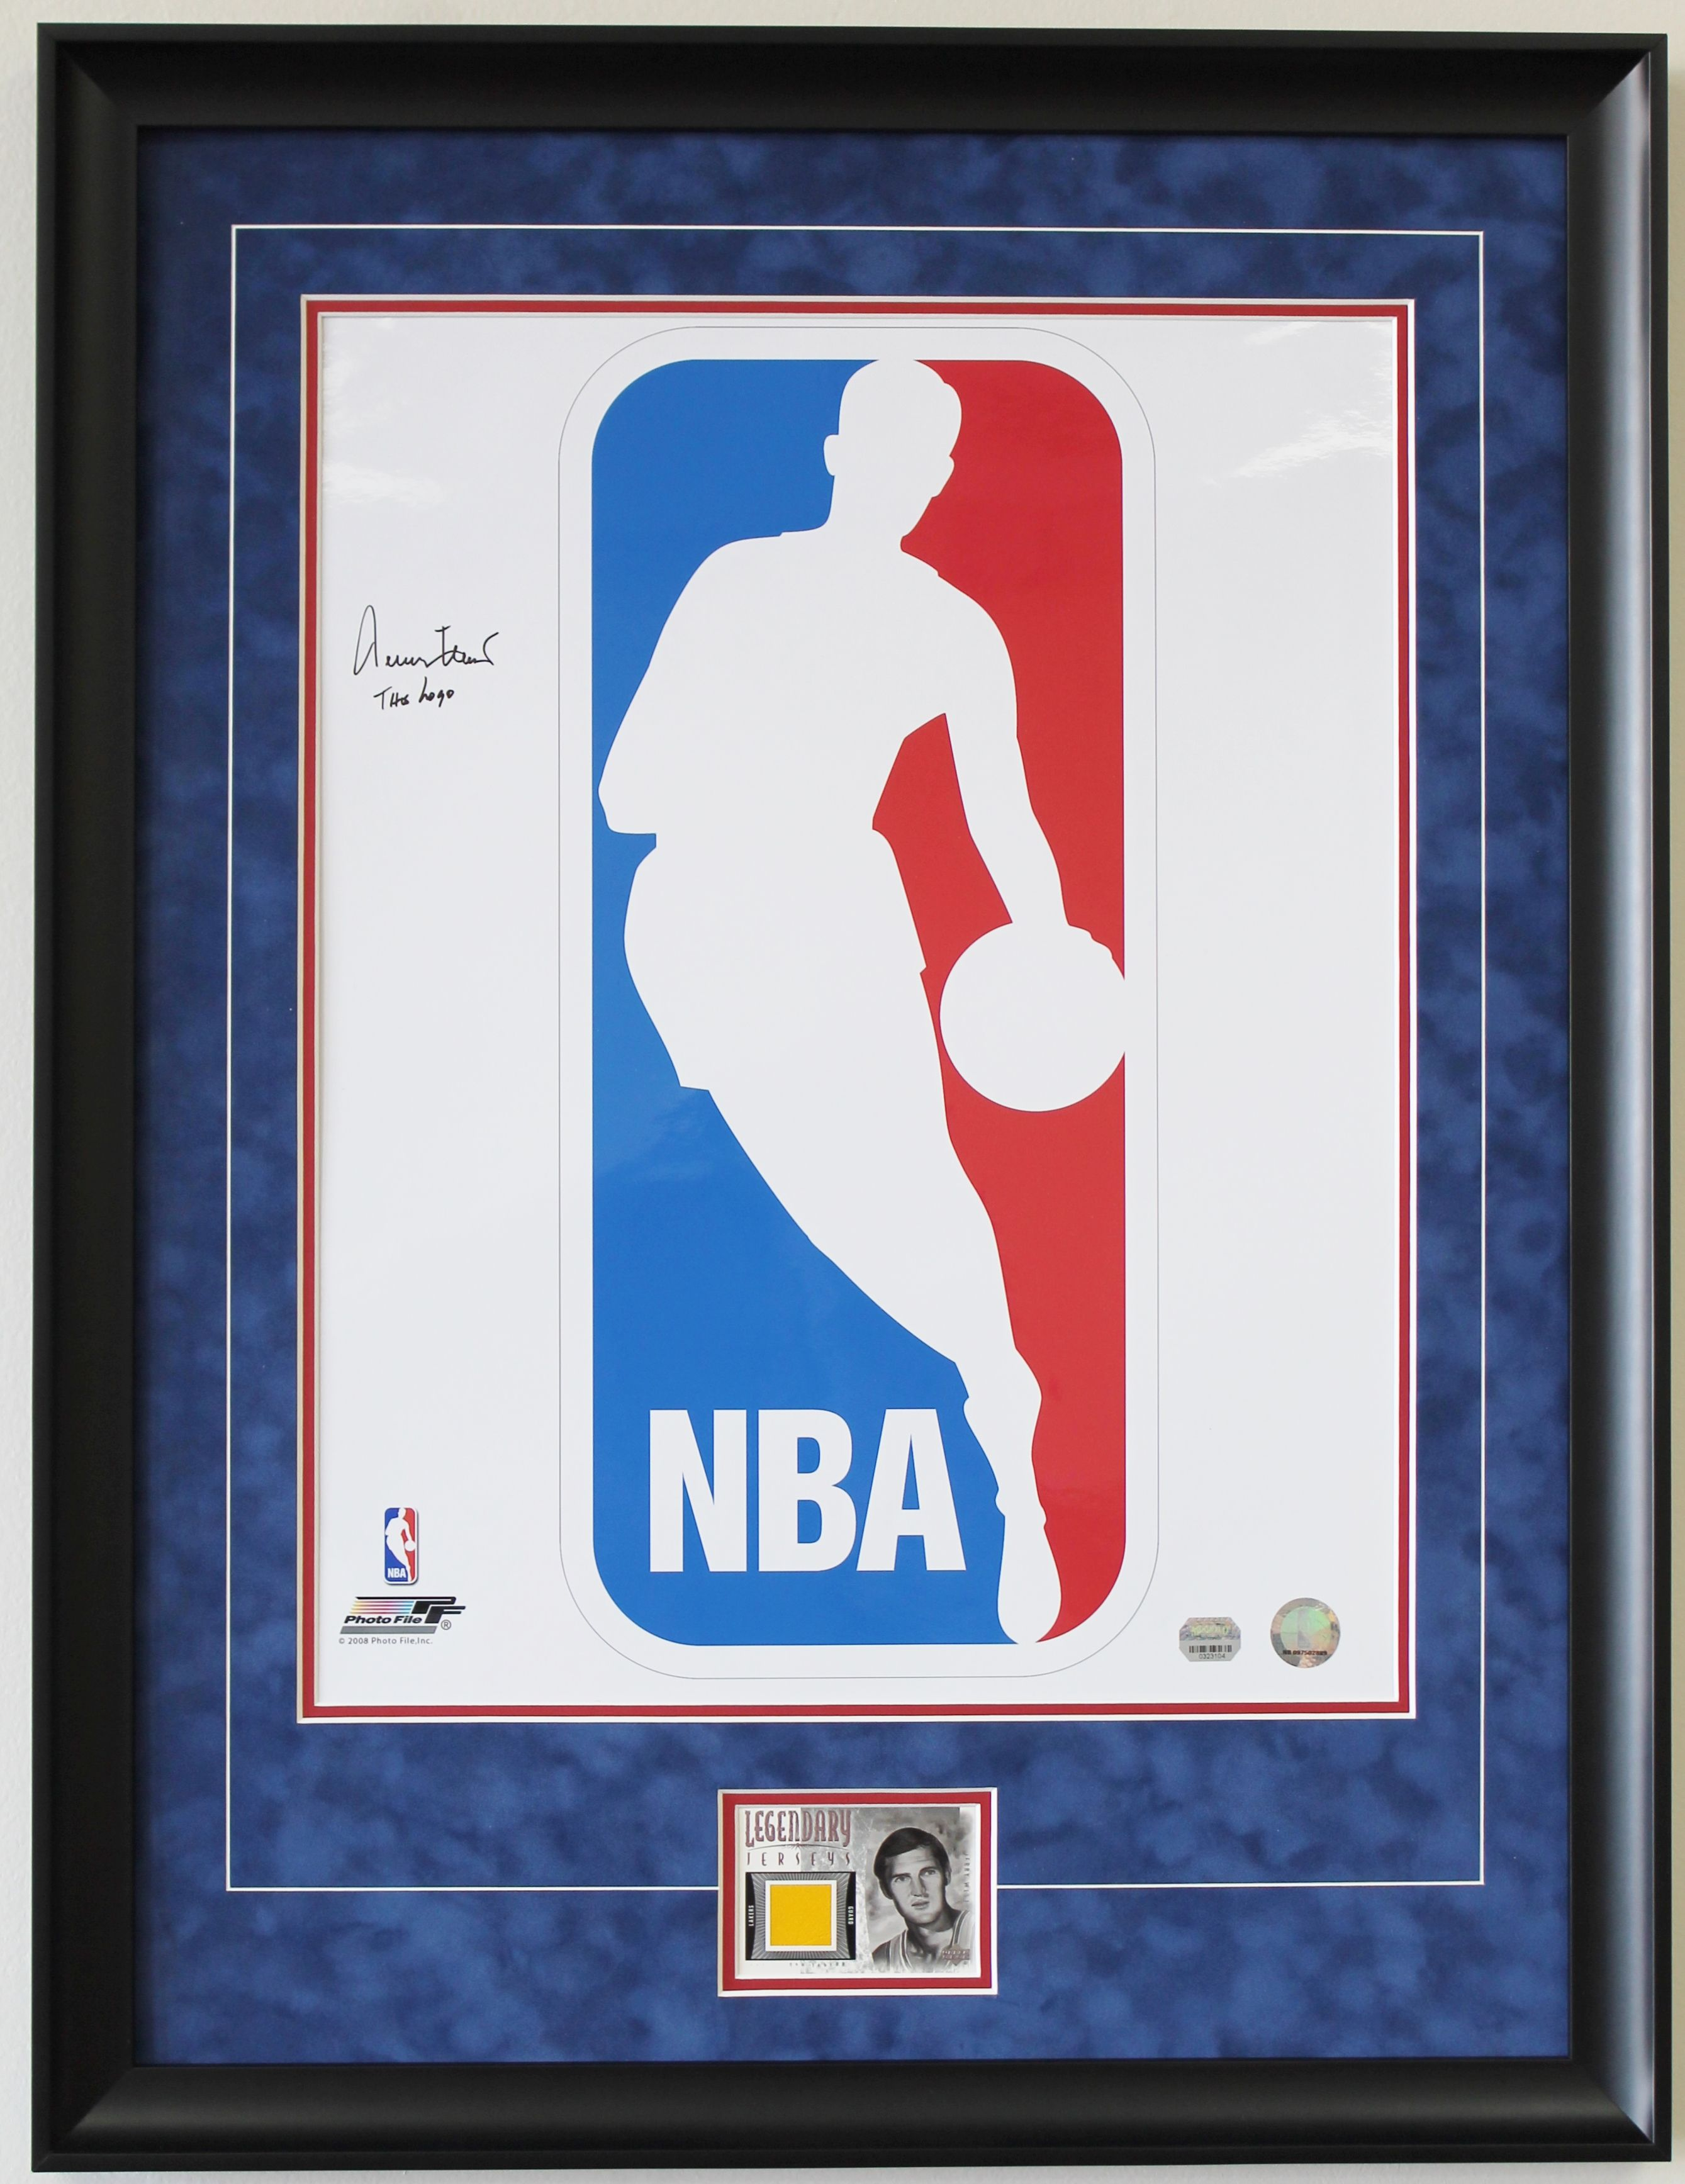 NBA Logo with Jerry West Basketball card Fantasy